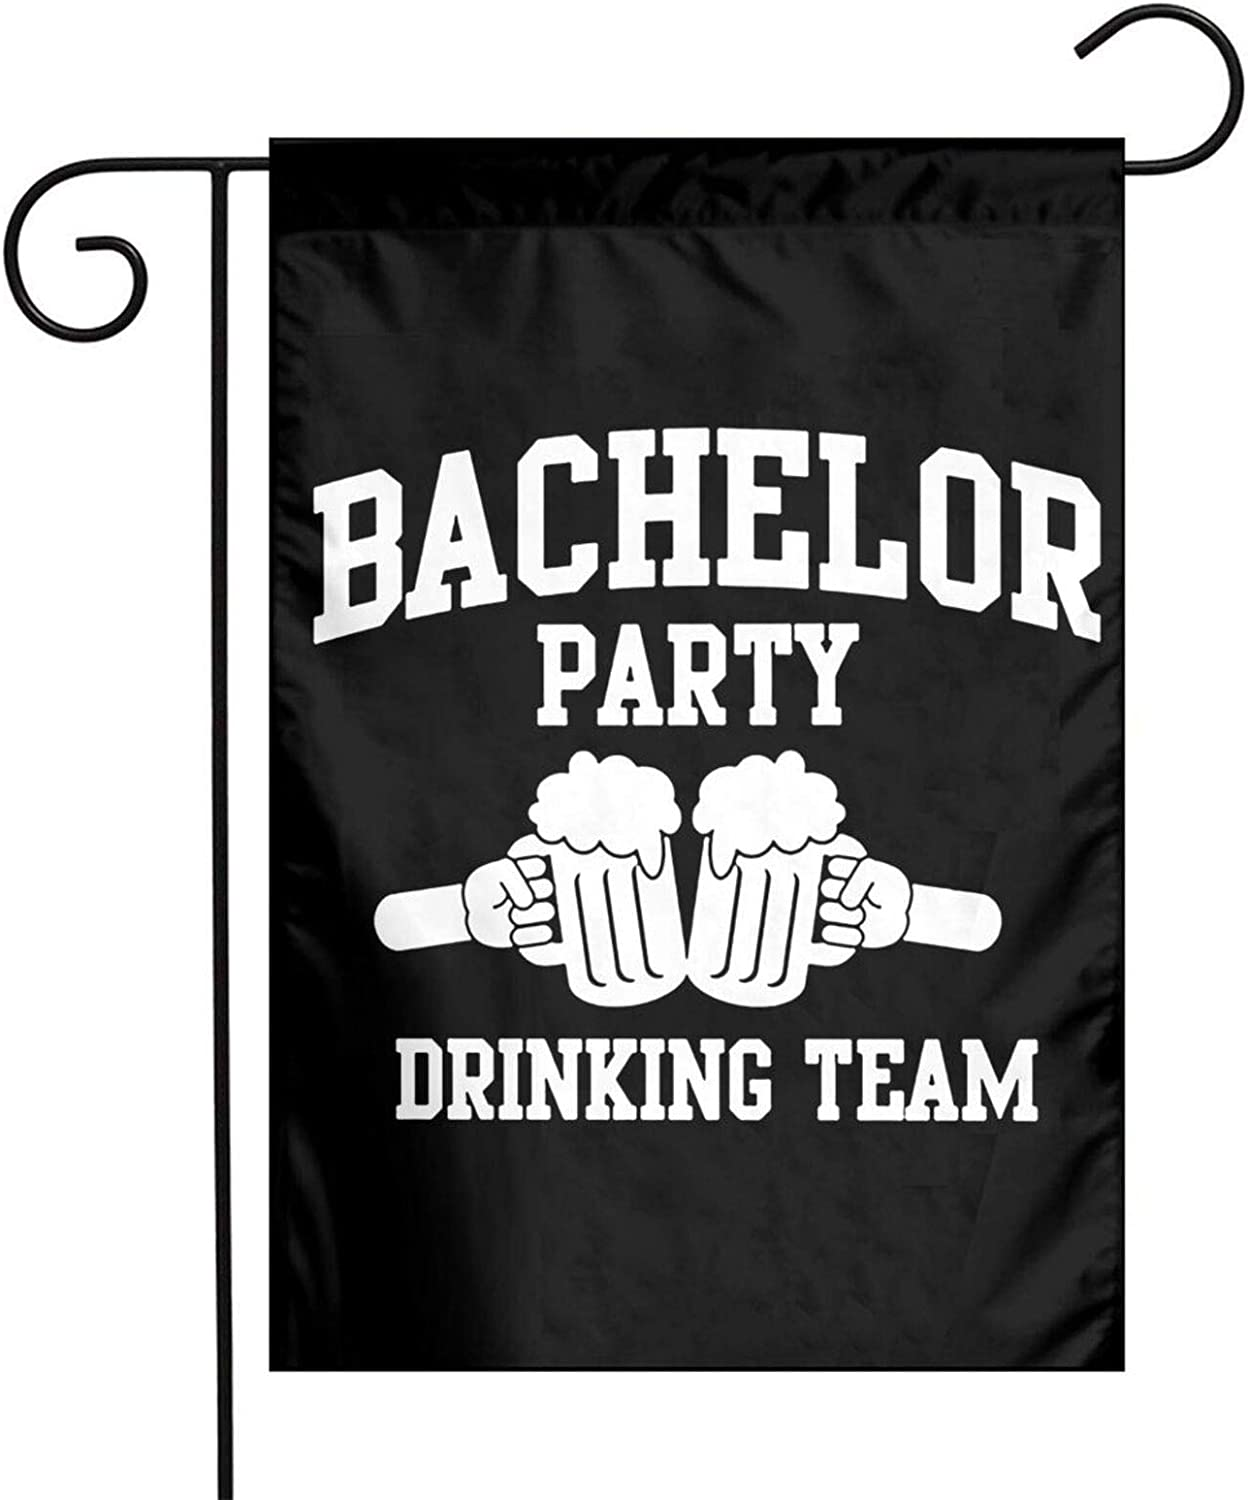 XIOJEIEY Bachelor Party Groom Drinking Team Garden Flag Double Sided for Garden Yard Outdoor Decorative 12 X 18 Inch